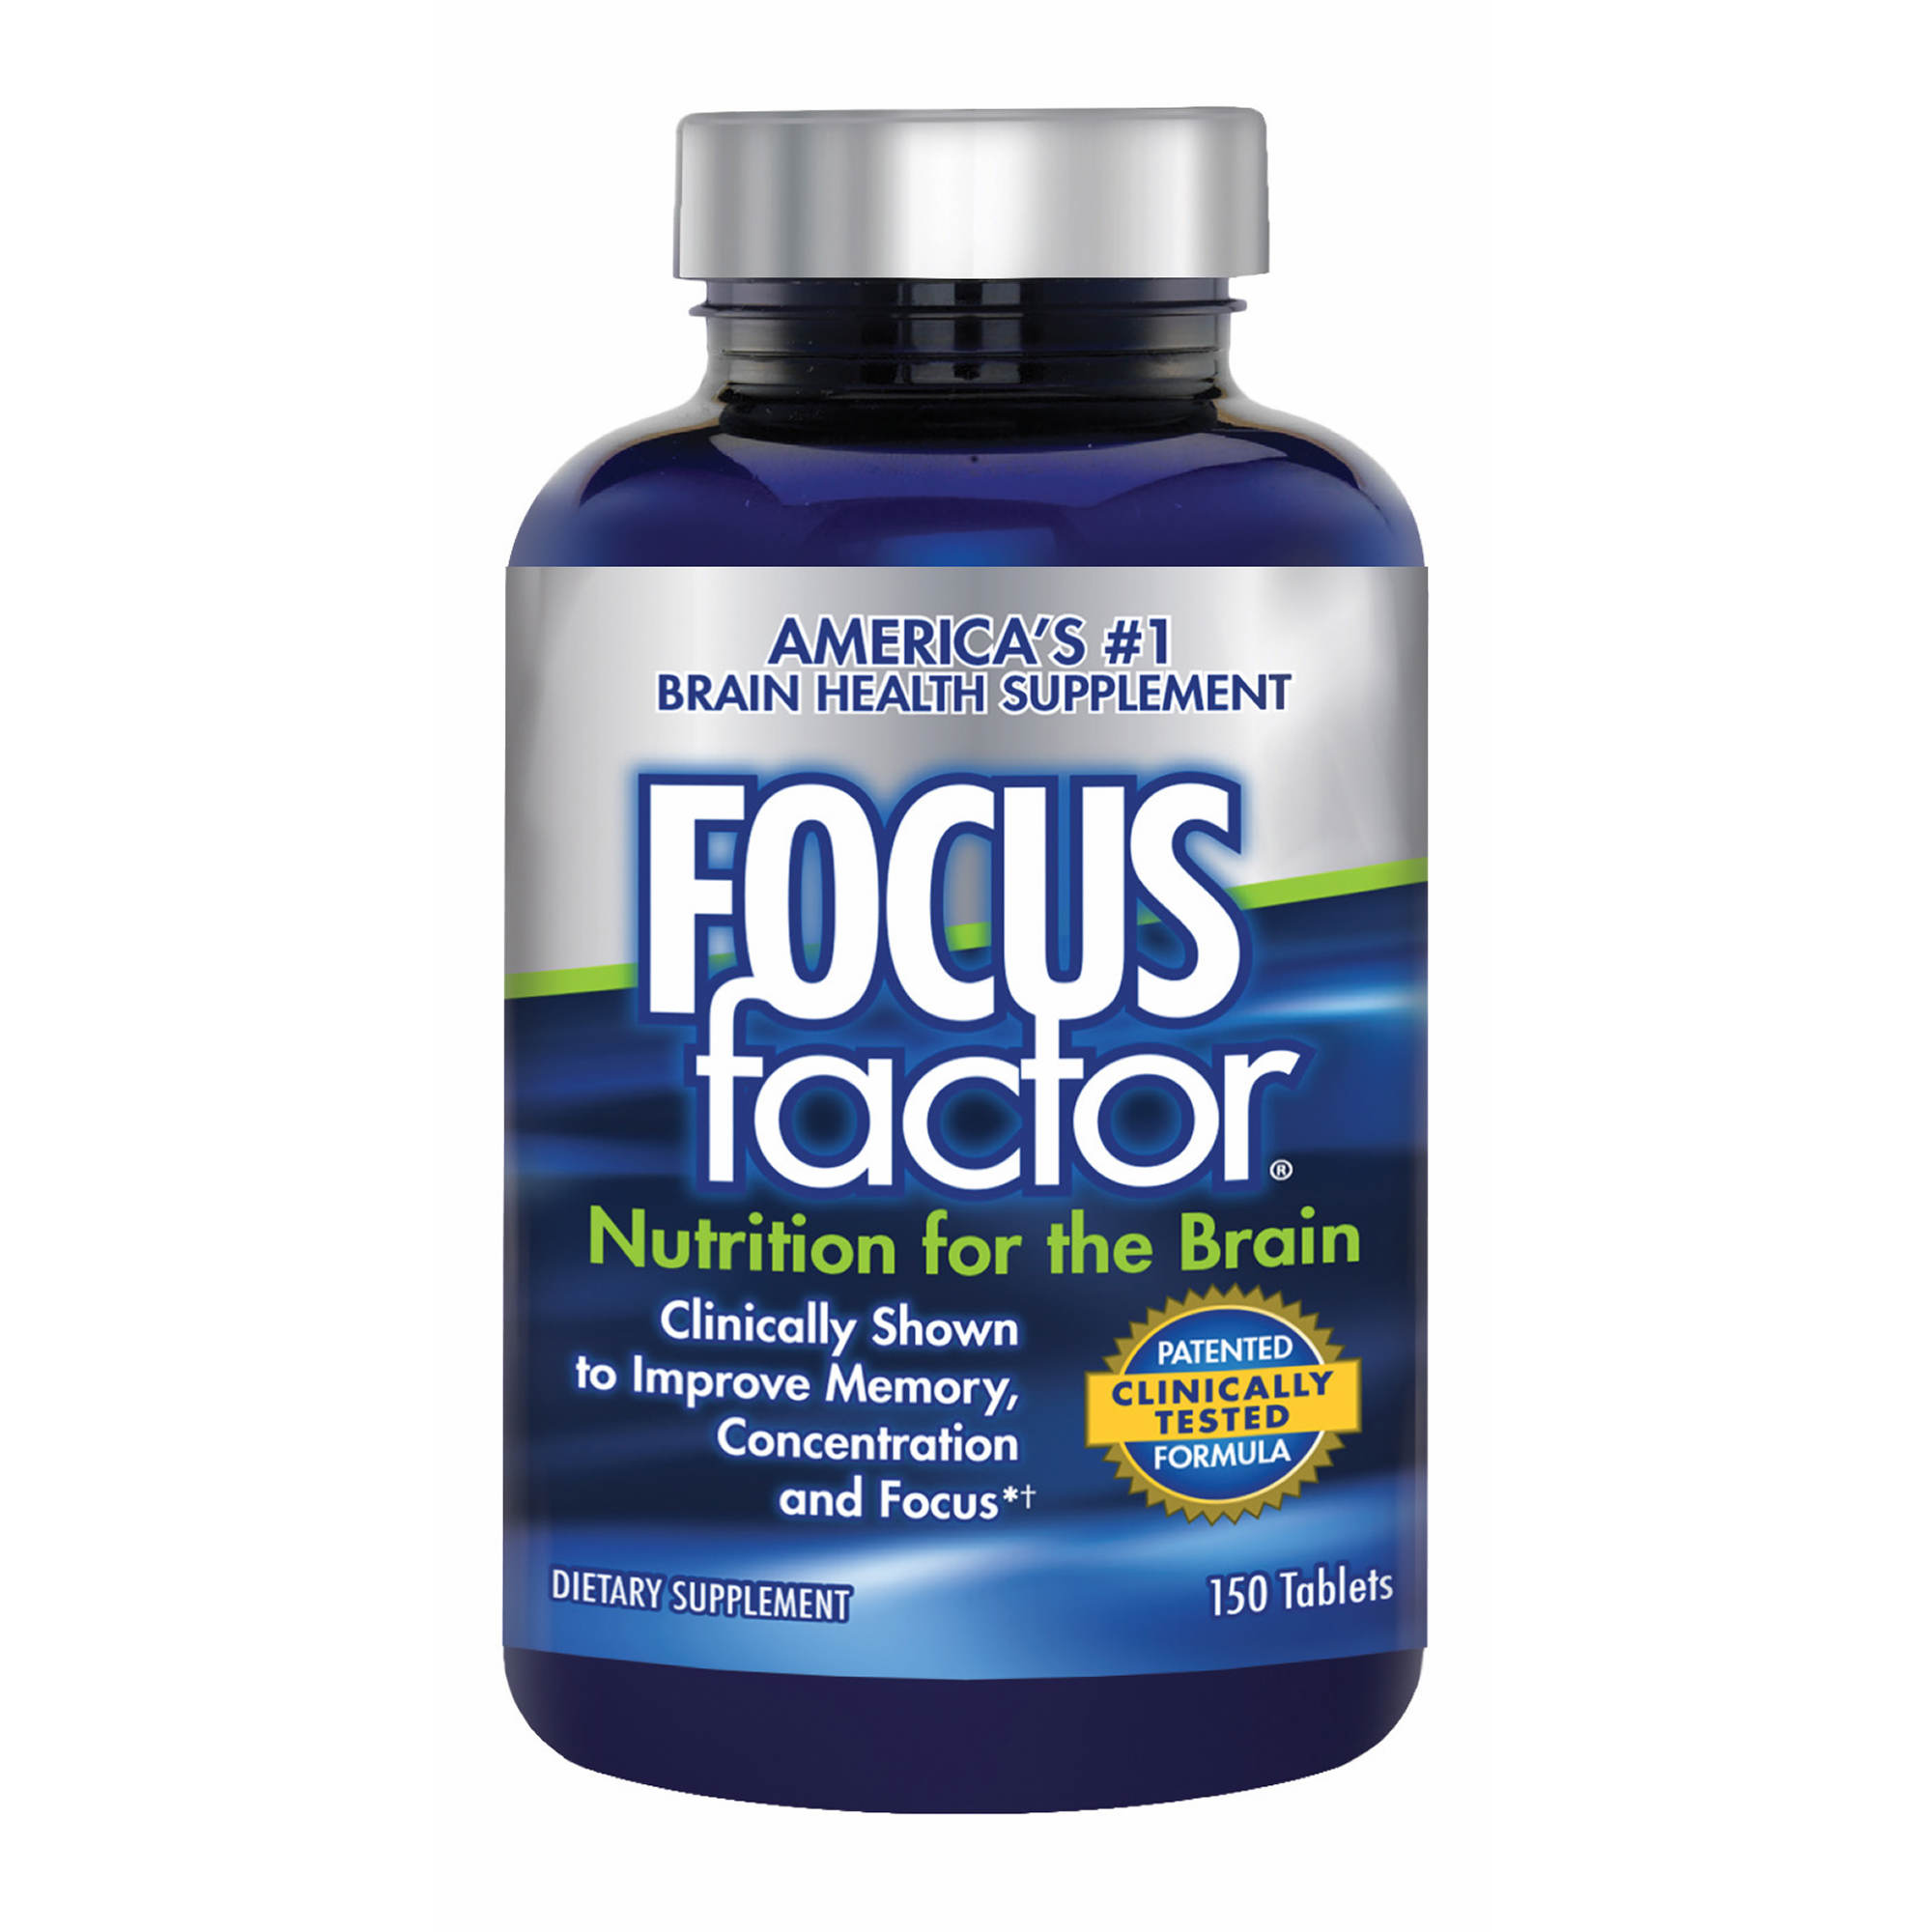 How to take focus factor